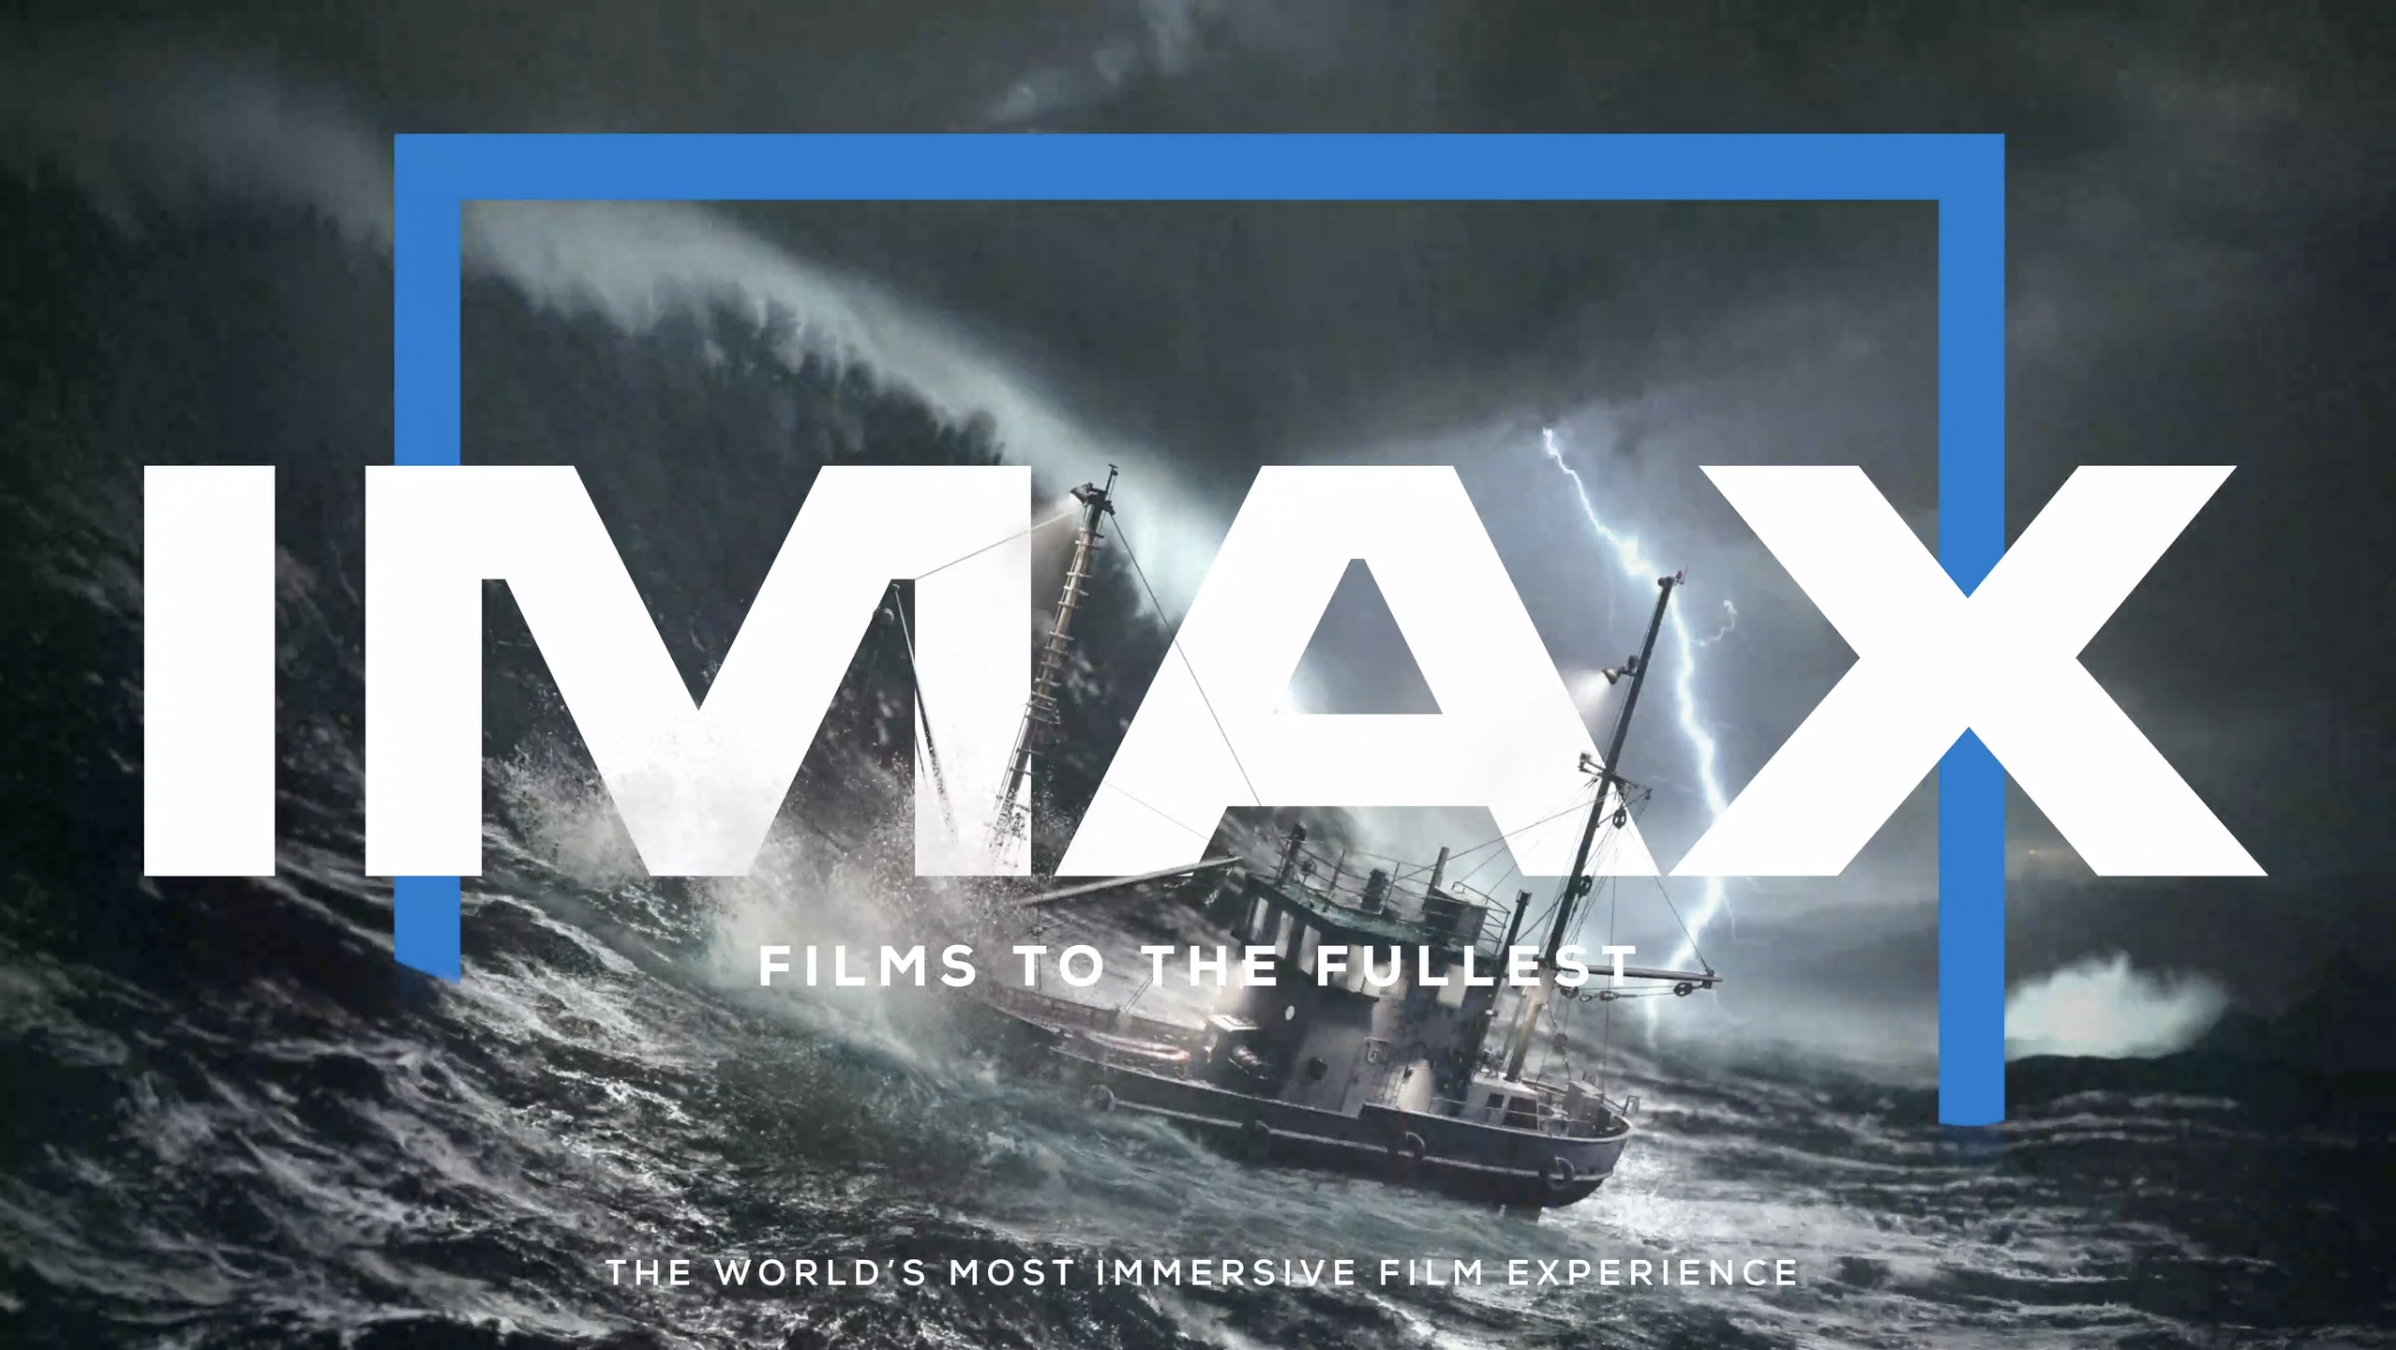 Cool Poster Cinemagraph For Imax Good Use Of Overlaid Text Logo Jp Imax Cool Posters Cinemagraph